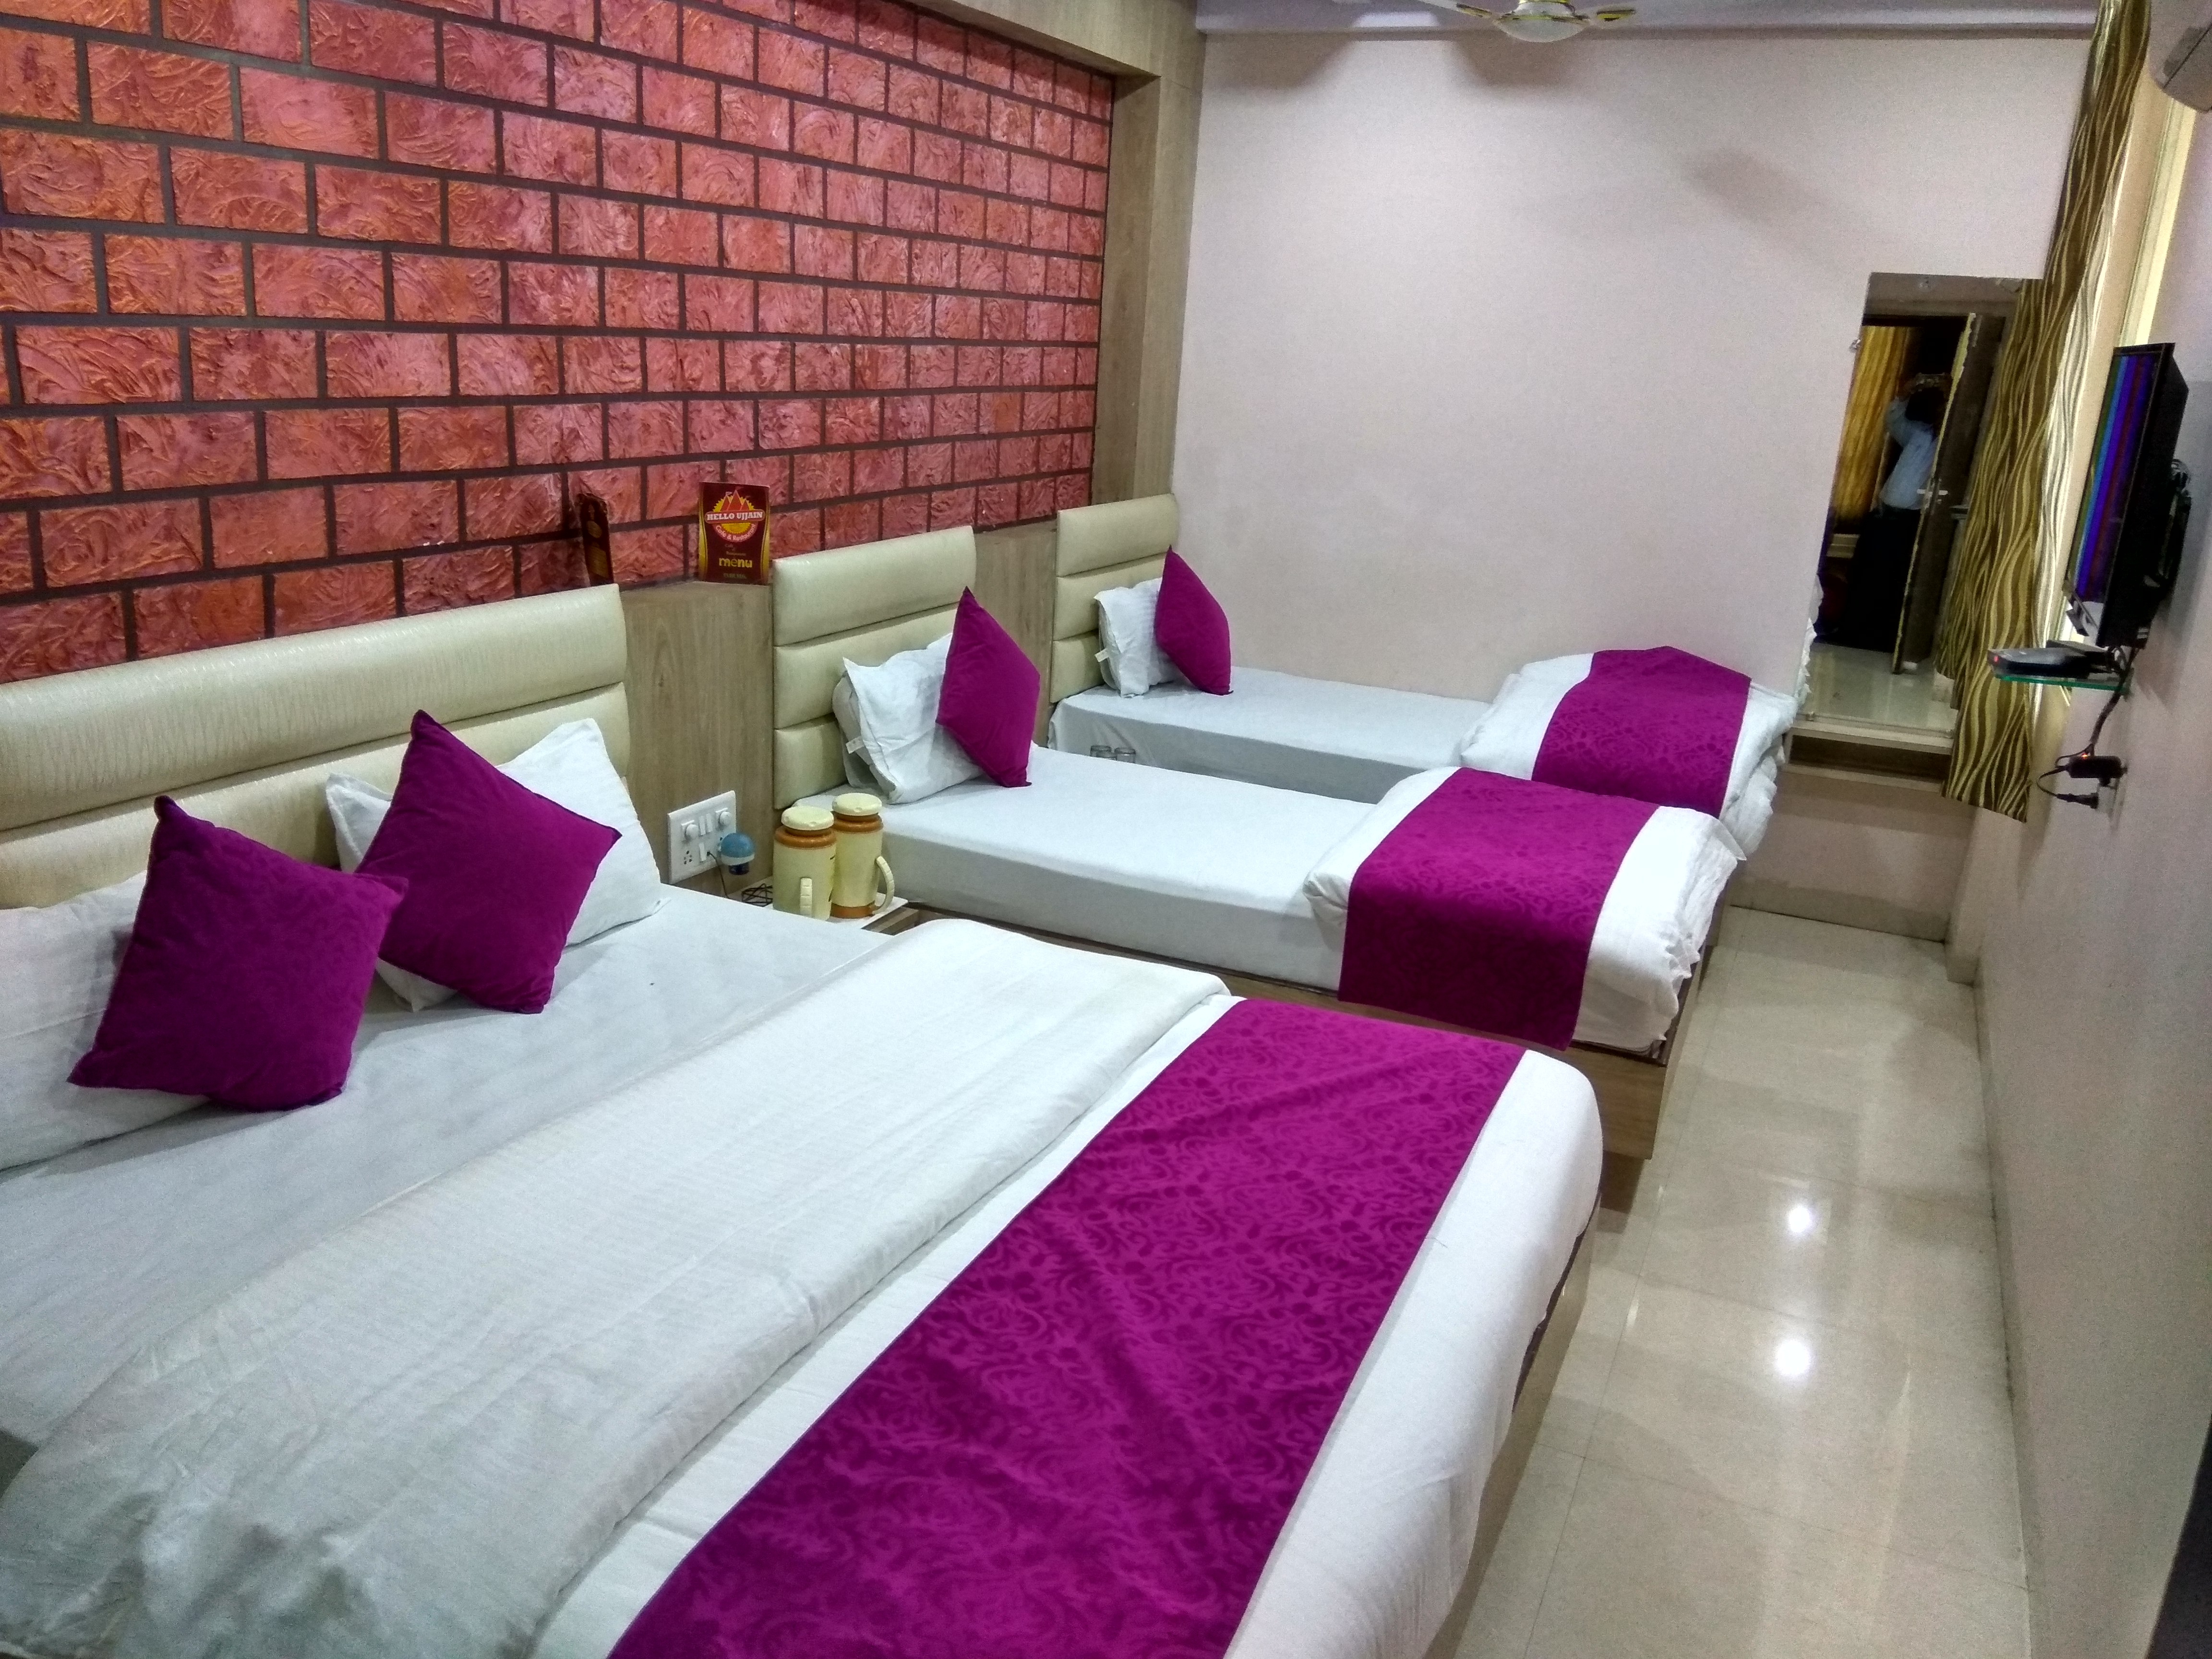 Four Bedded AC Room, HOTEL AAMANTRAN AVENUE UJJAIN - Budget Hotels in Ujjain